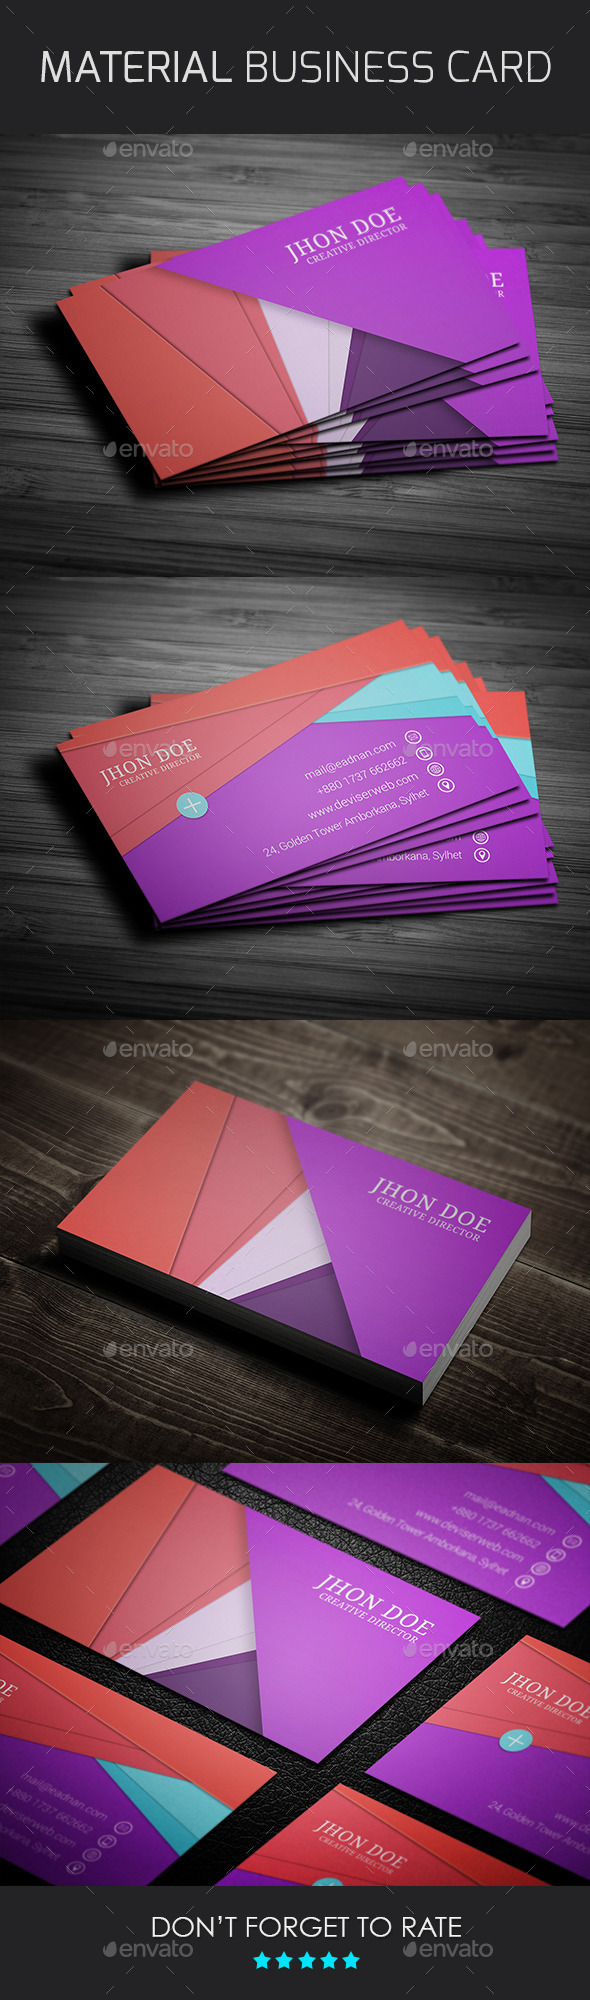 Material Design Business Card Template - Creative Business Cards